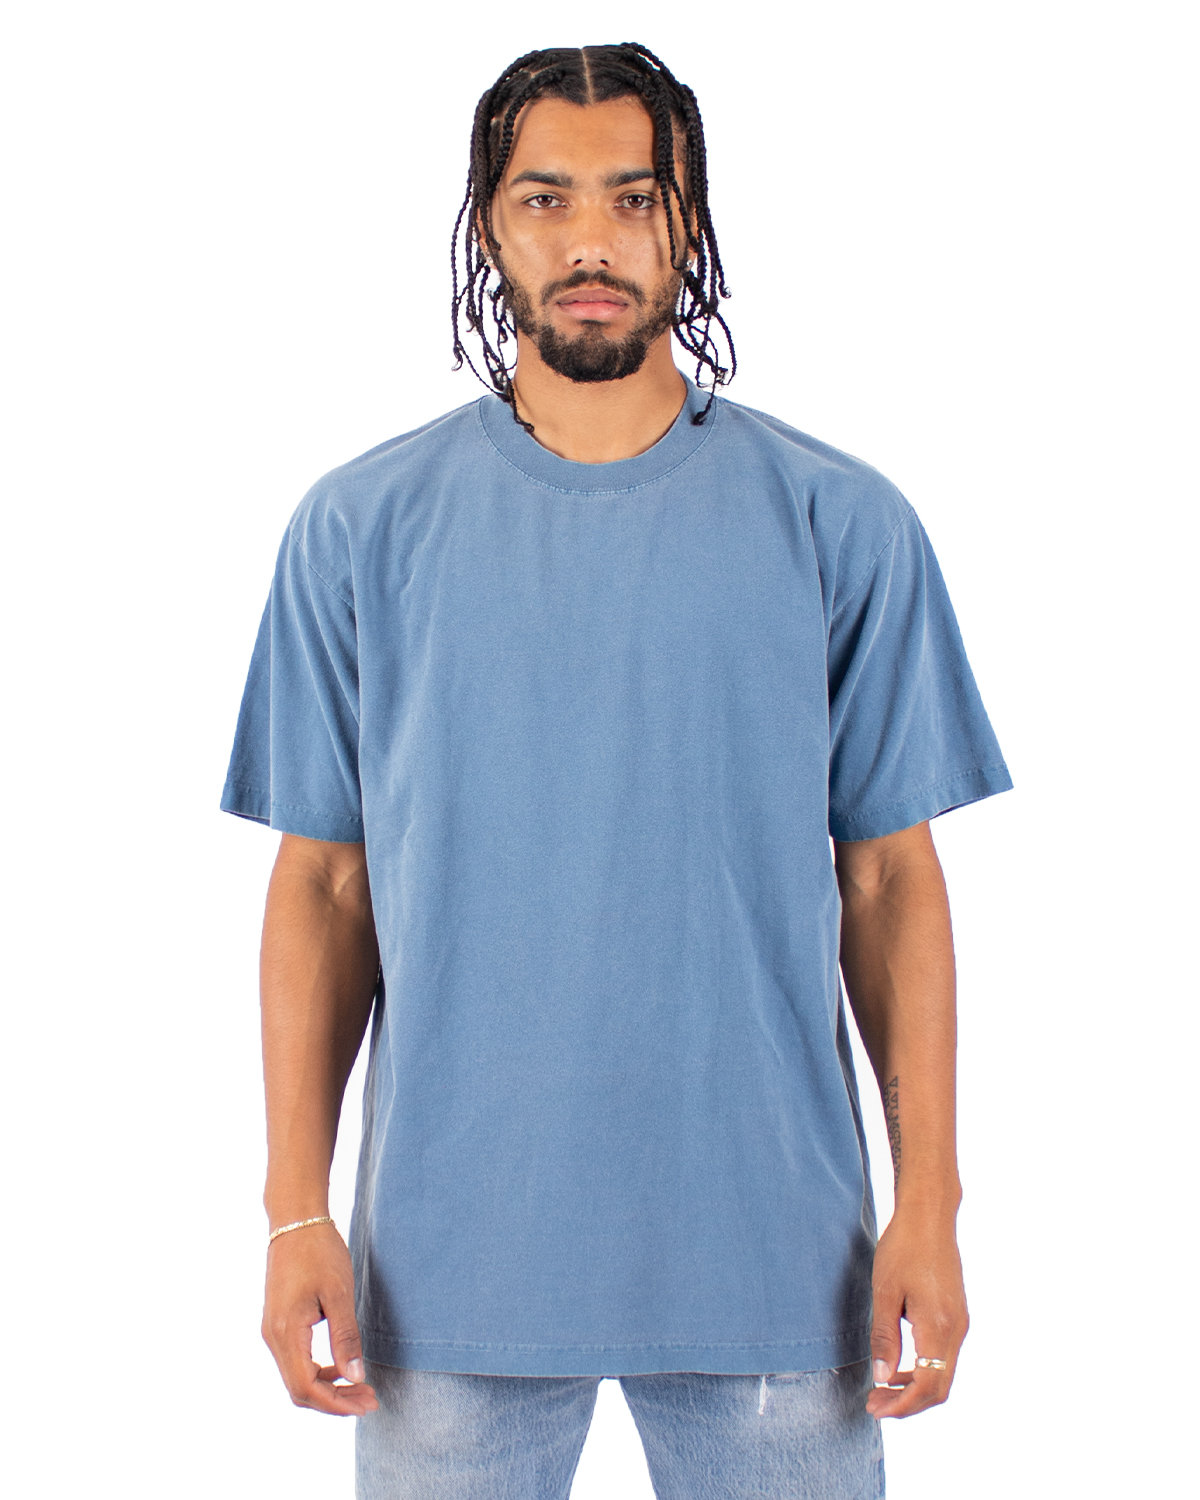 Shaka Wear Drop Ship Garment-Dyed Crewneck T-Shirt WASHED DENIM